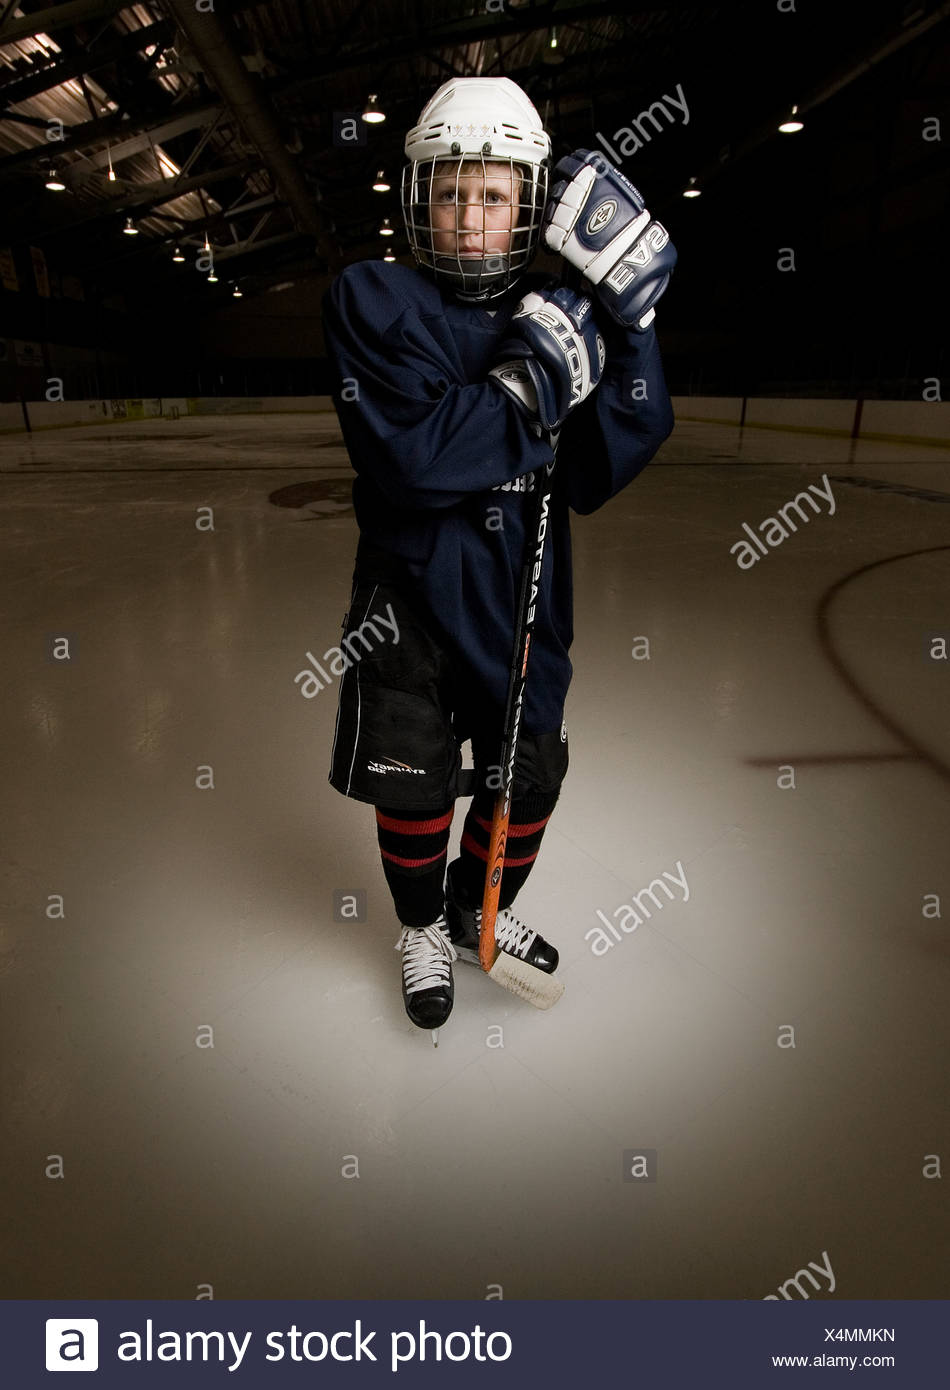 Nathaniel Werhane playing hockey and posing for a portrait in Santa Fe, New Mexico - Stock Image